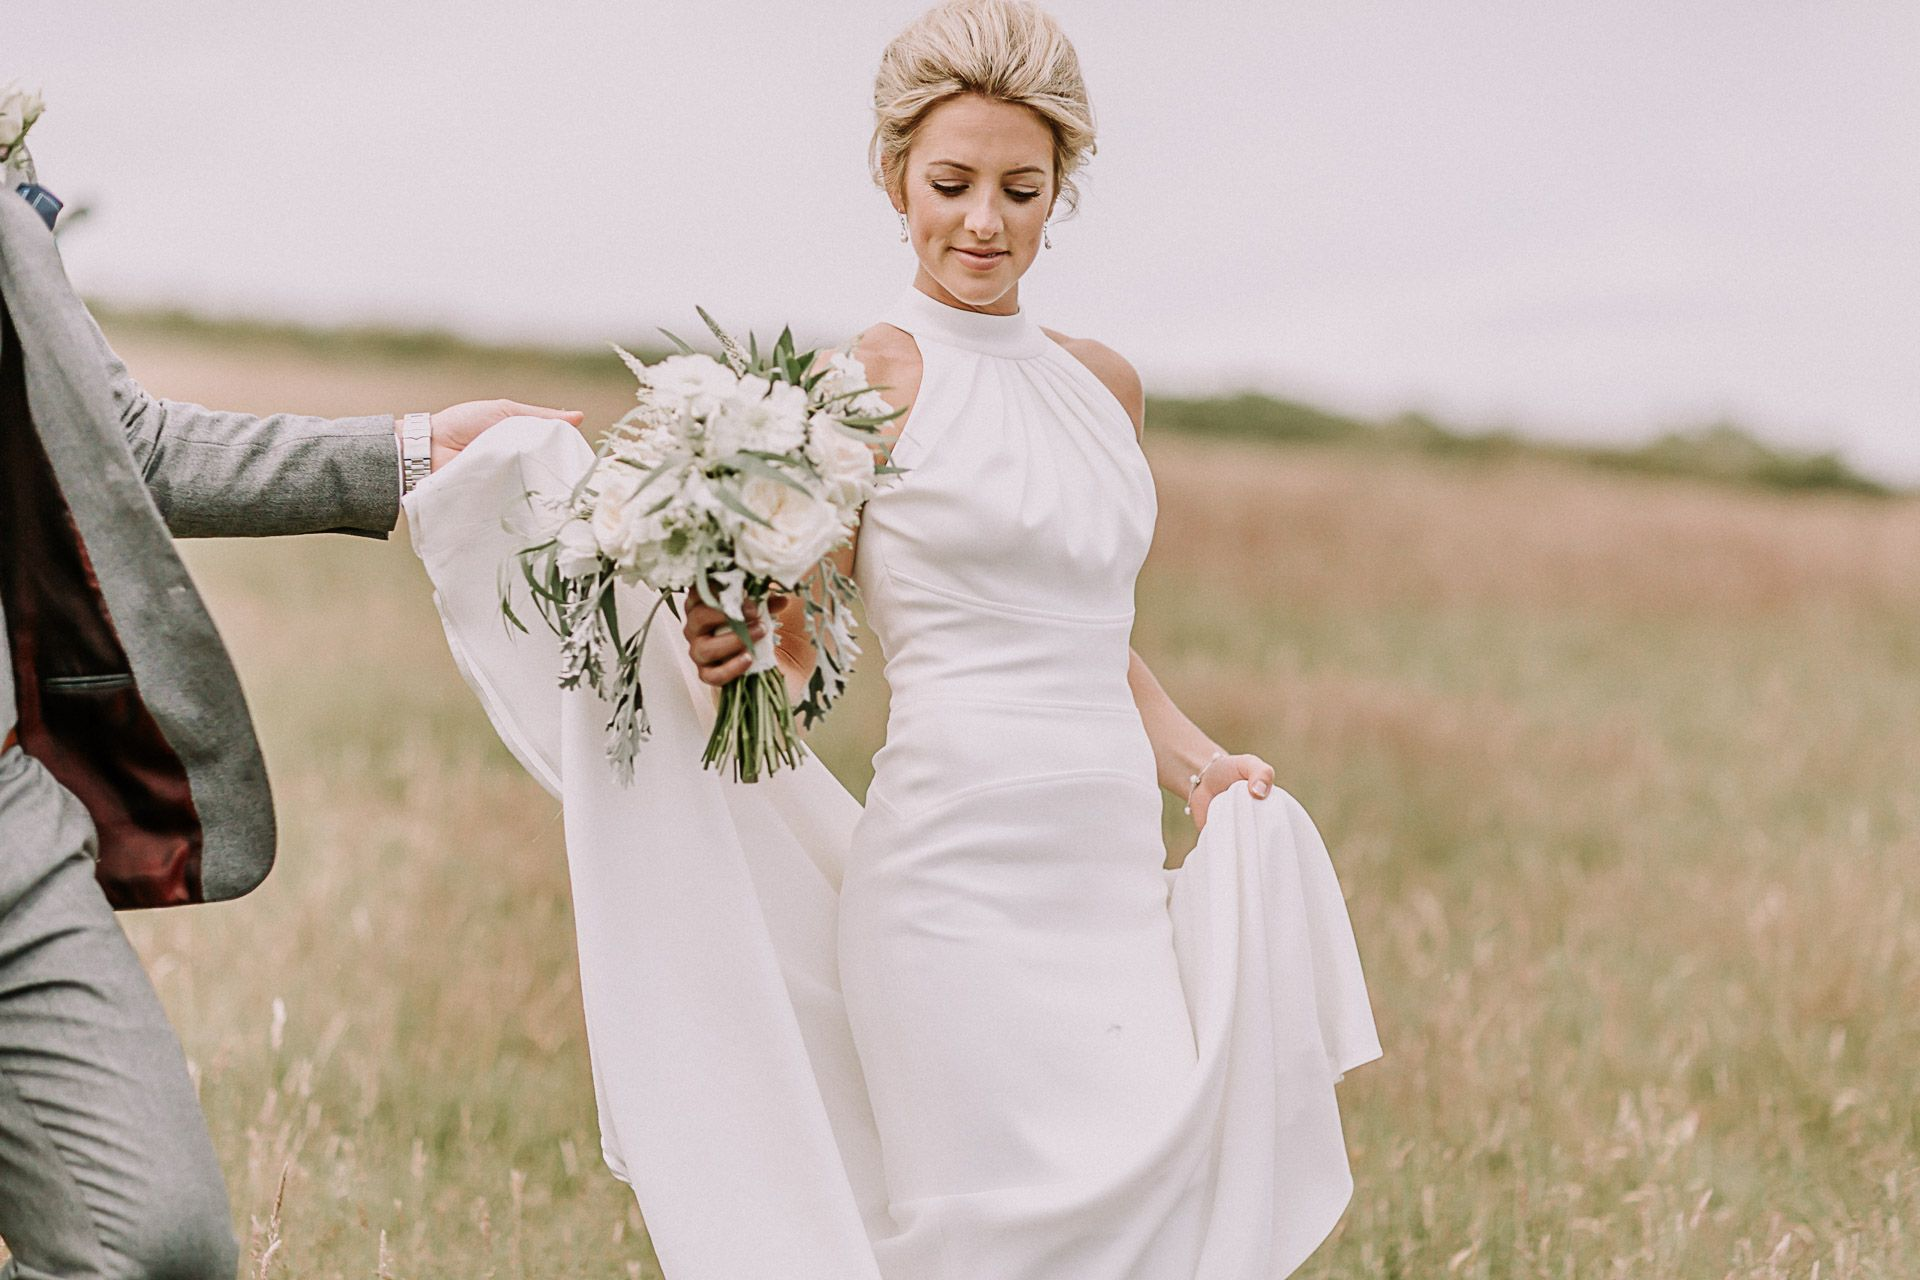 Get In Touch Via Www Danward Co Uk Having The Most Epic Wedding Season This Is A Few Frames From Some Of 40 Weddings I Have Already Shot Year